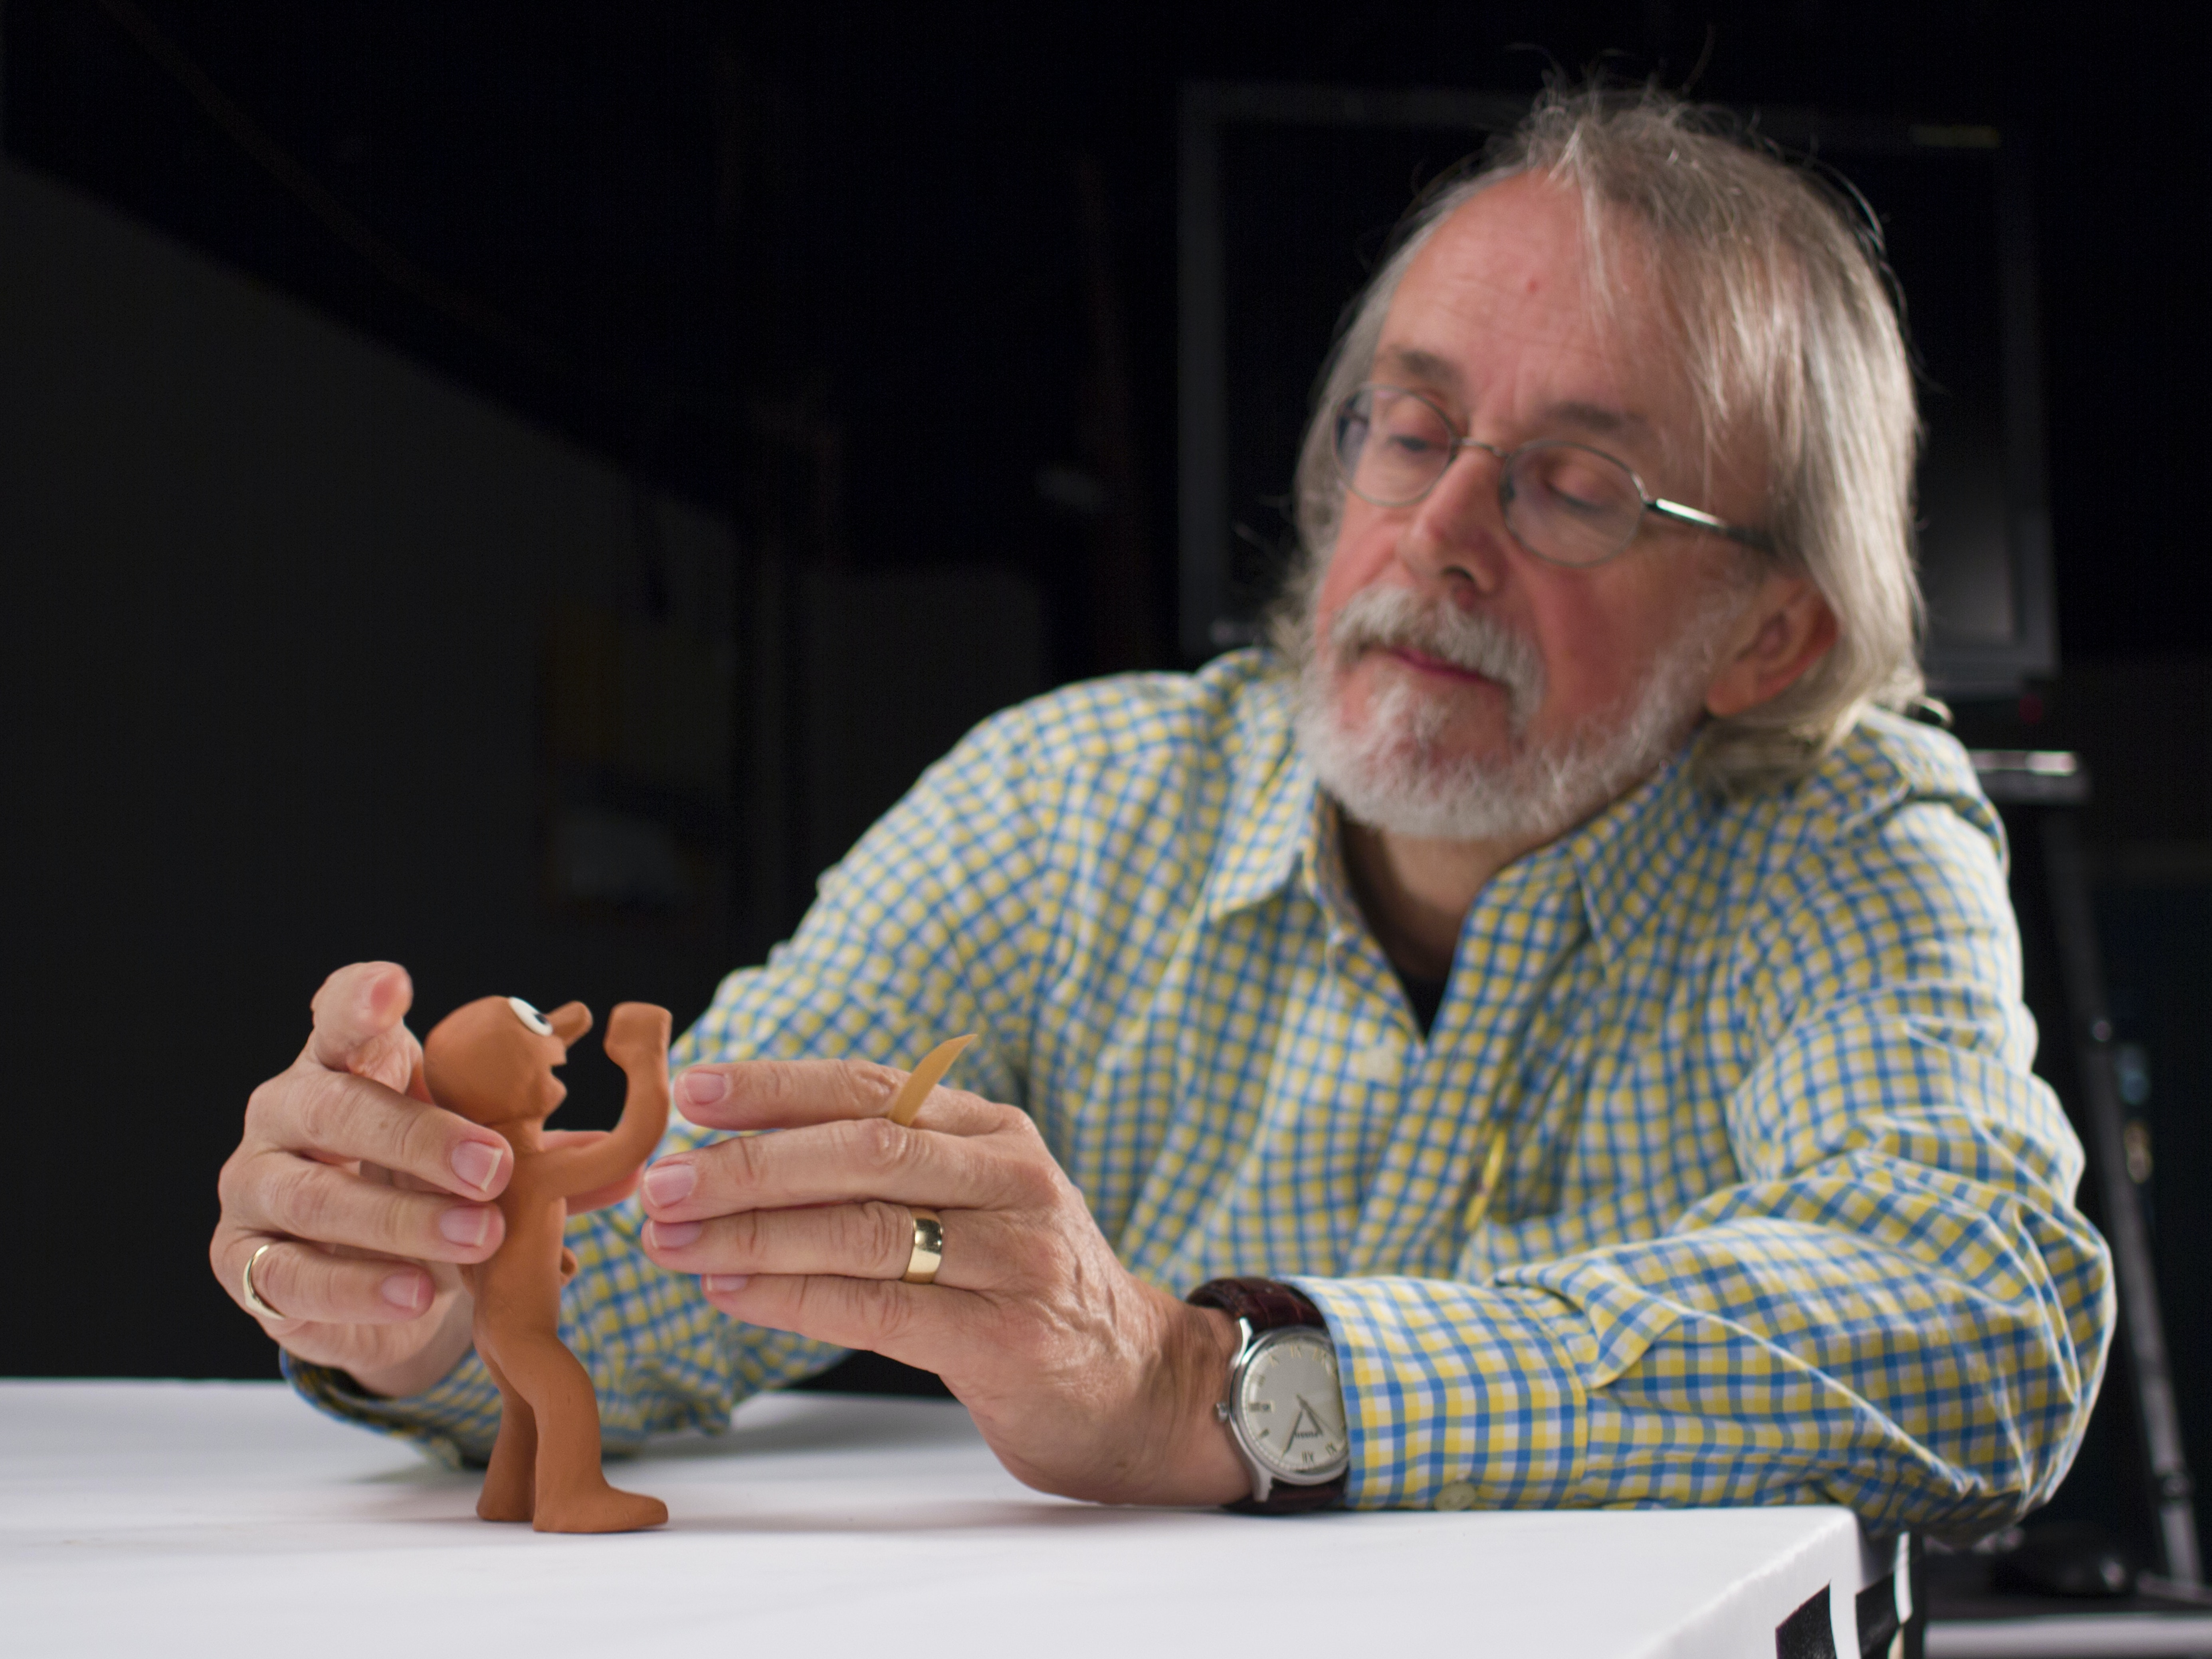 Aardman co-founder Peter Lord with his plasticine creation, Morph